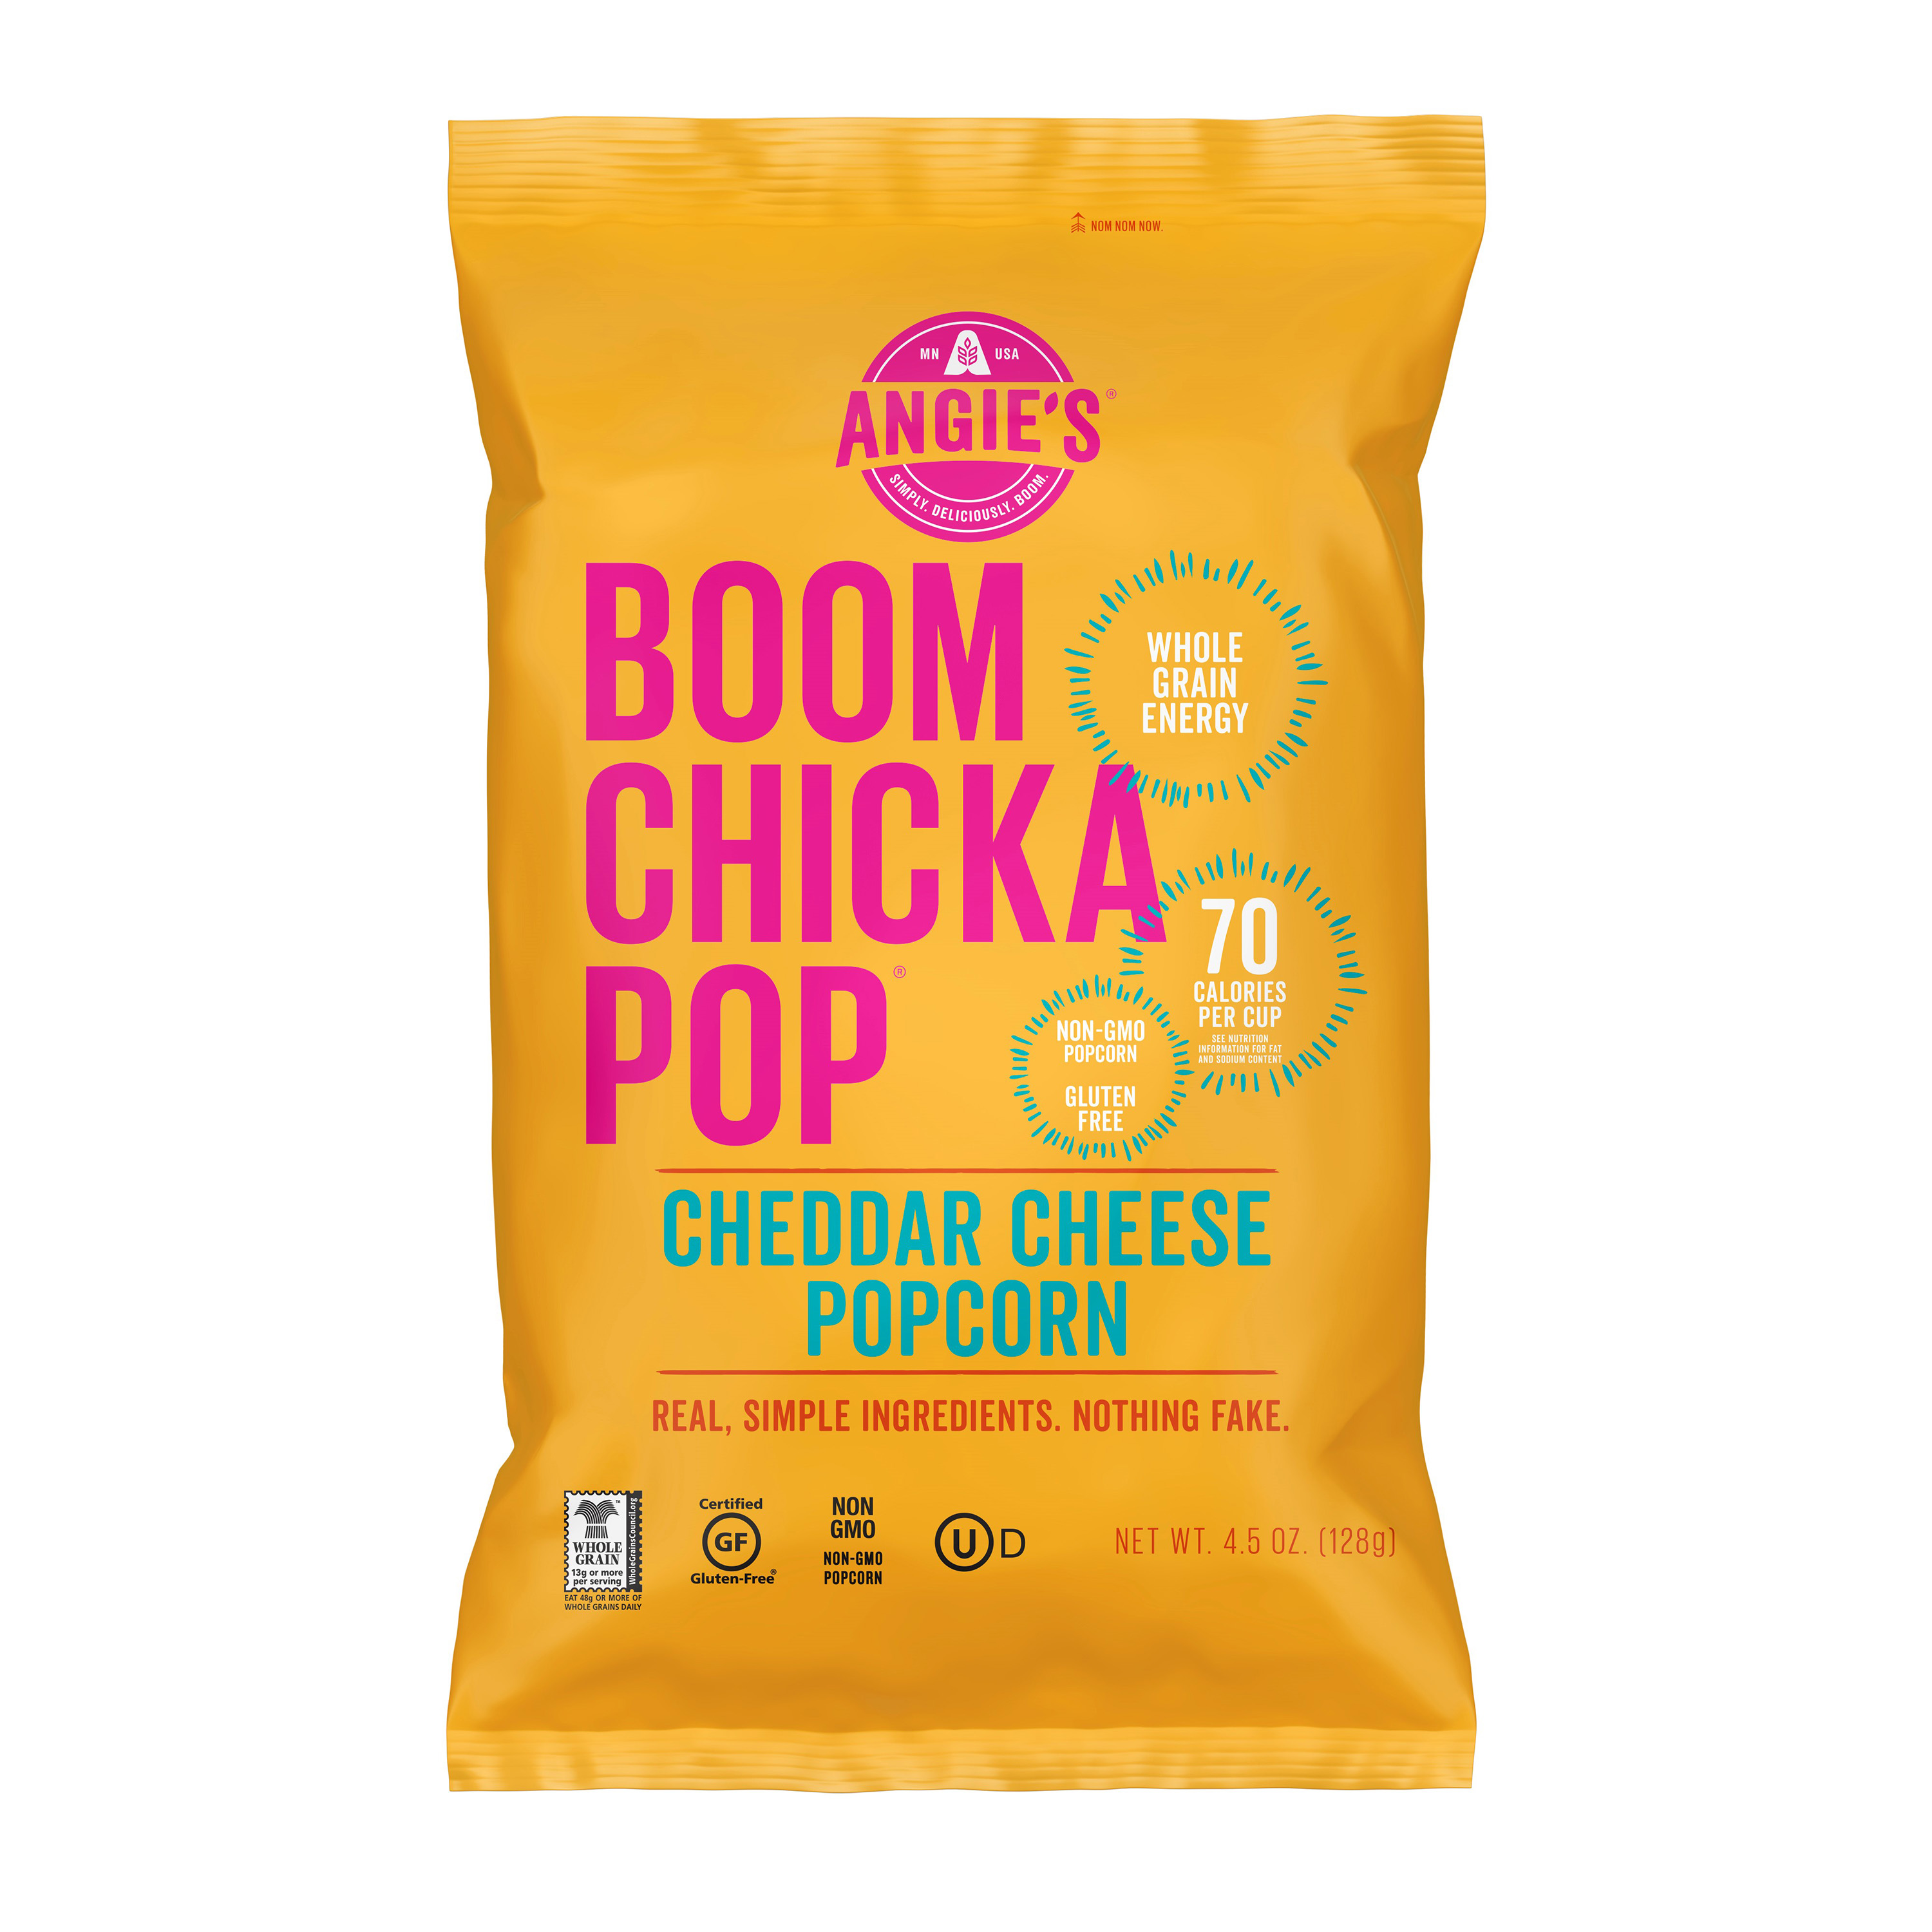 (3 Pack) Angie Boom Chick Pop Cheddar Cheese Popcorn, 4.5 oz